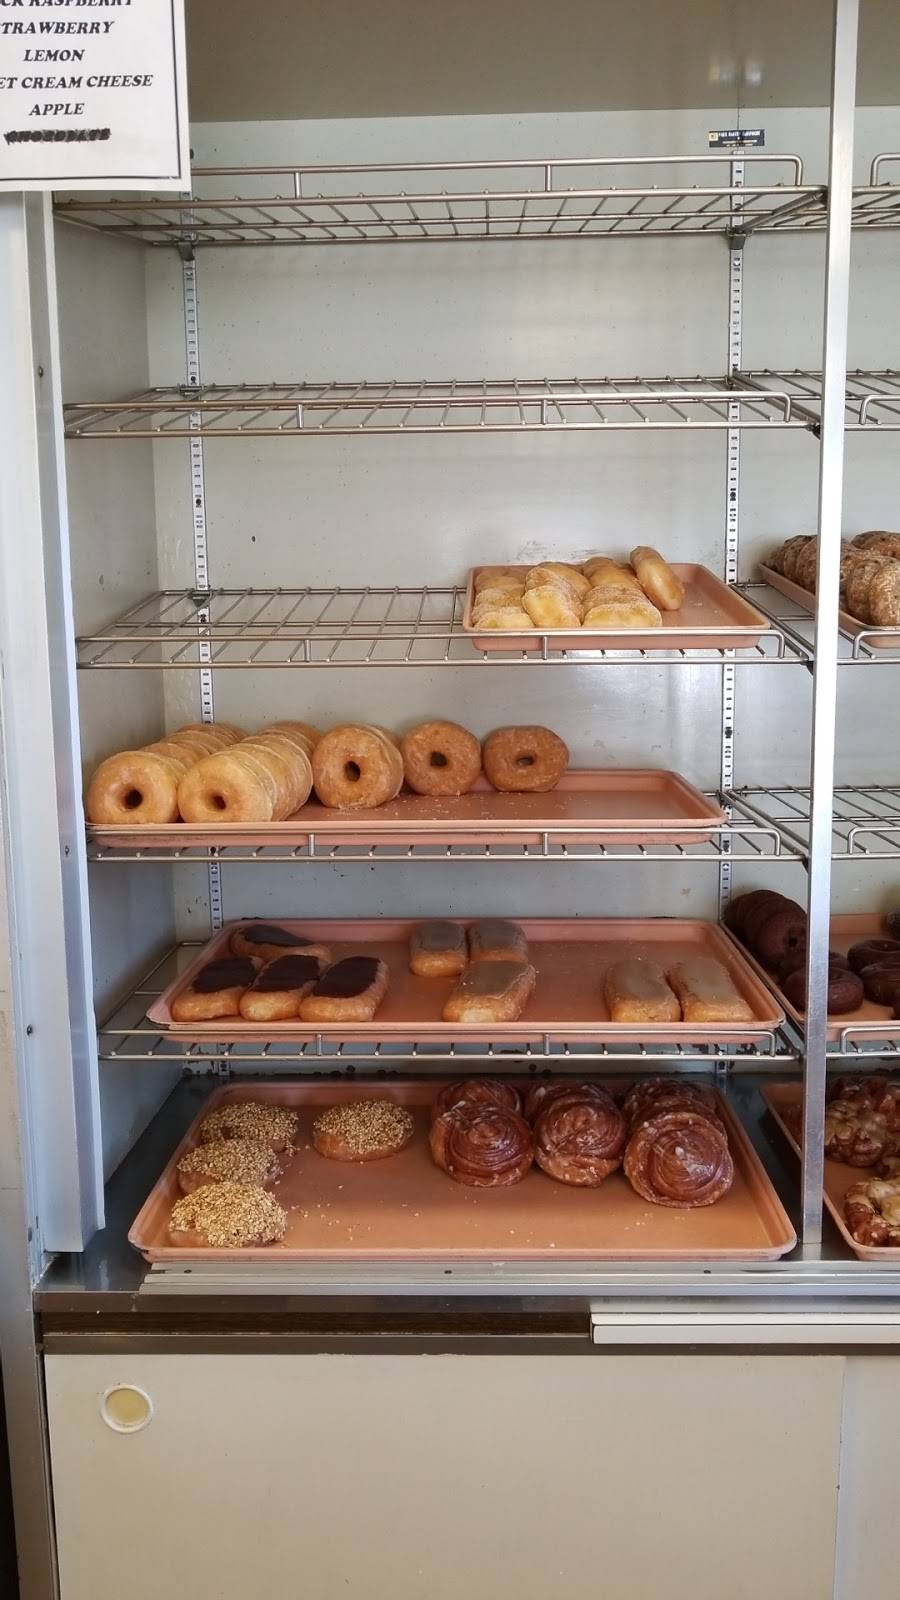 Daylight Donuts | bakery | 1102 S Broadway St, Pittsburg, KS 66762, USA | 6202310570 OR +1 620-231-0570